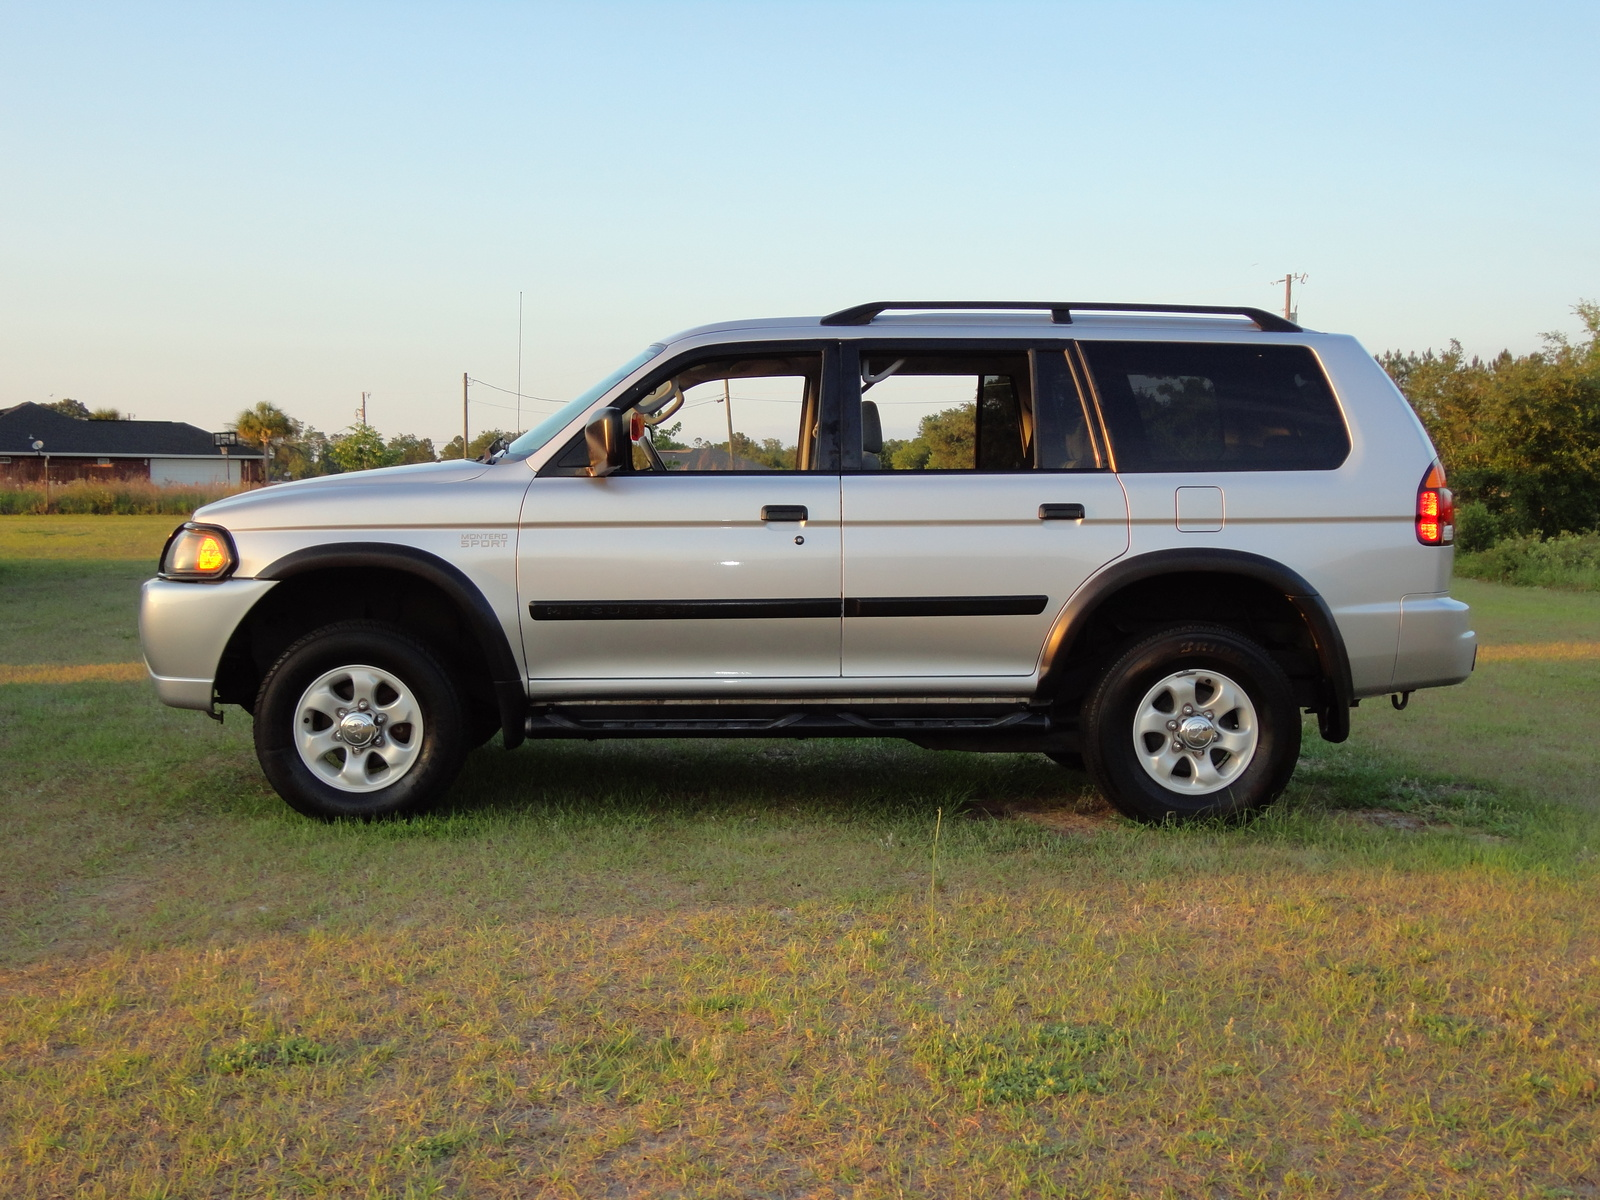 picture of 2003 mitsubishi montero sport es exterior_cce64?resize\=665%2C499 cce wiring diagram friendship bracelet diagrams, lighting cce switch box wiring diagram at fashall.co